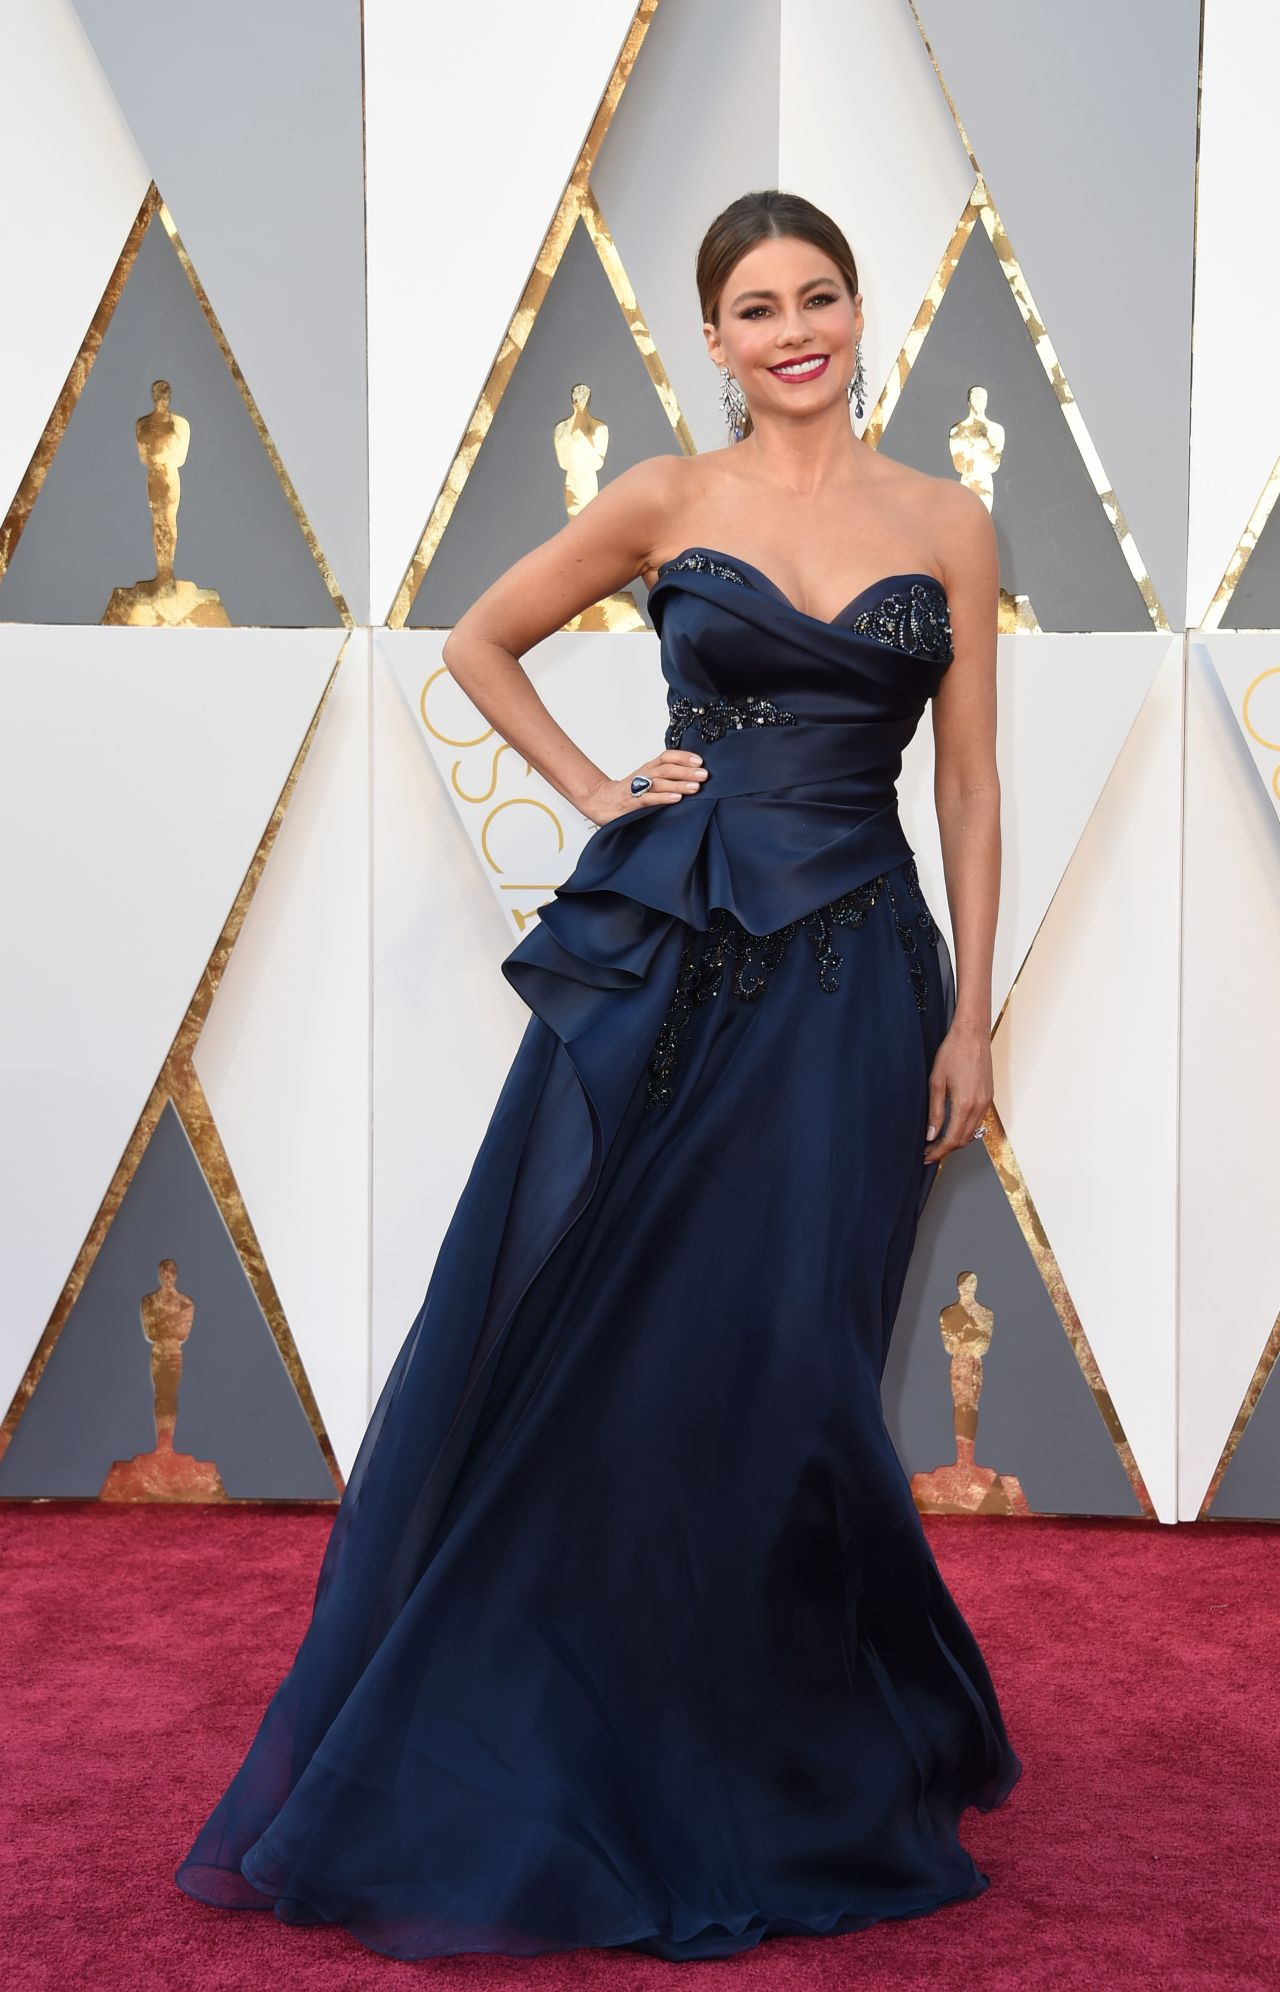 sofía-vergara-oscars-2016-in-hollywood-part-ii-11